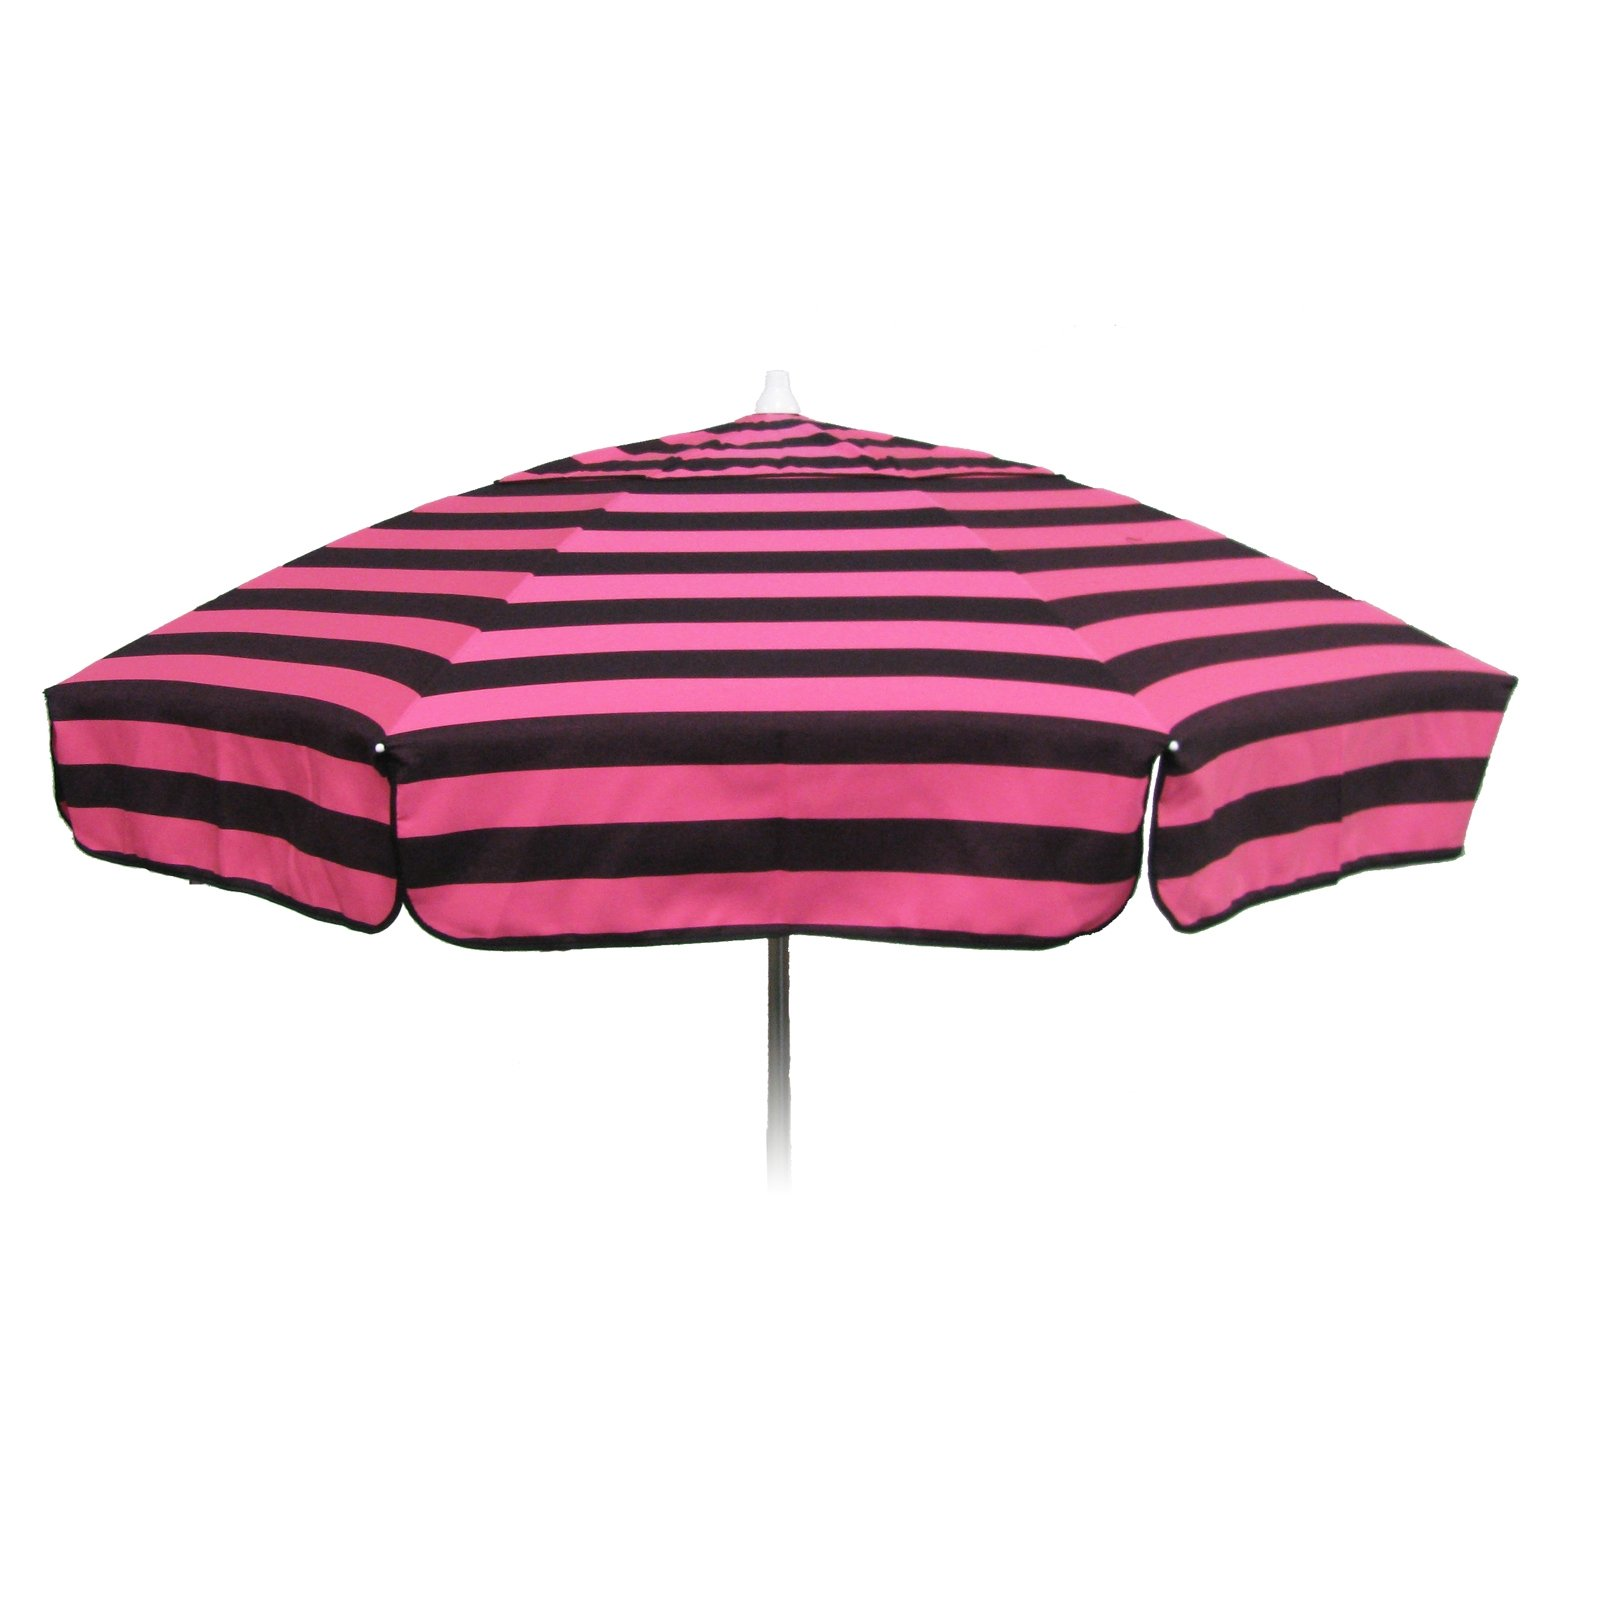 Italian 6 foot Push/Tilt Umbrella Acrylic Stripes Pink and Black - Patio Pole